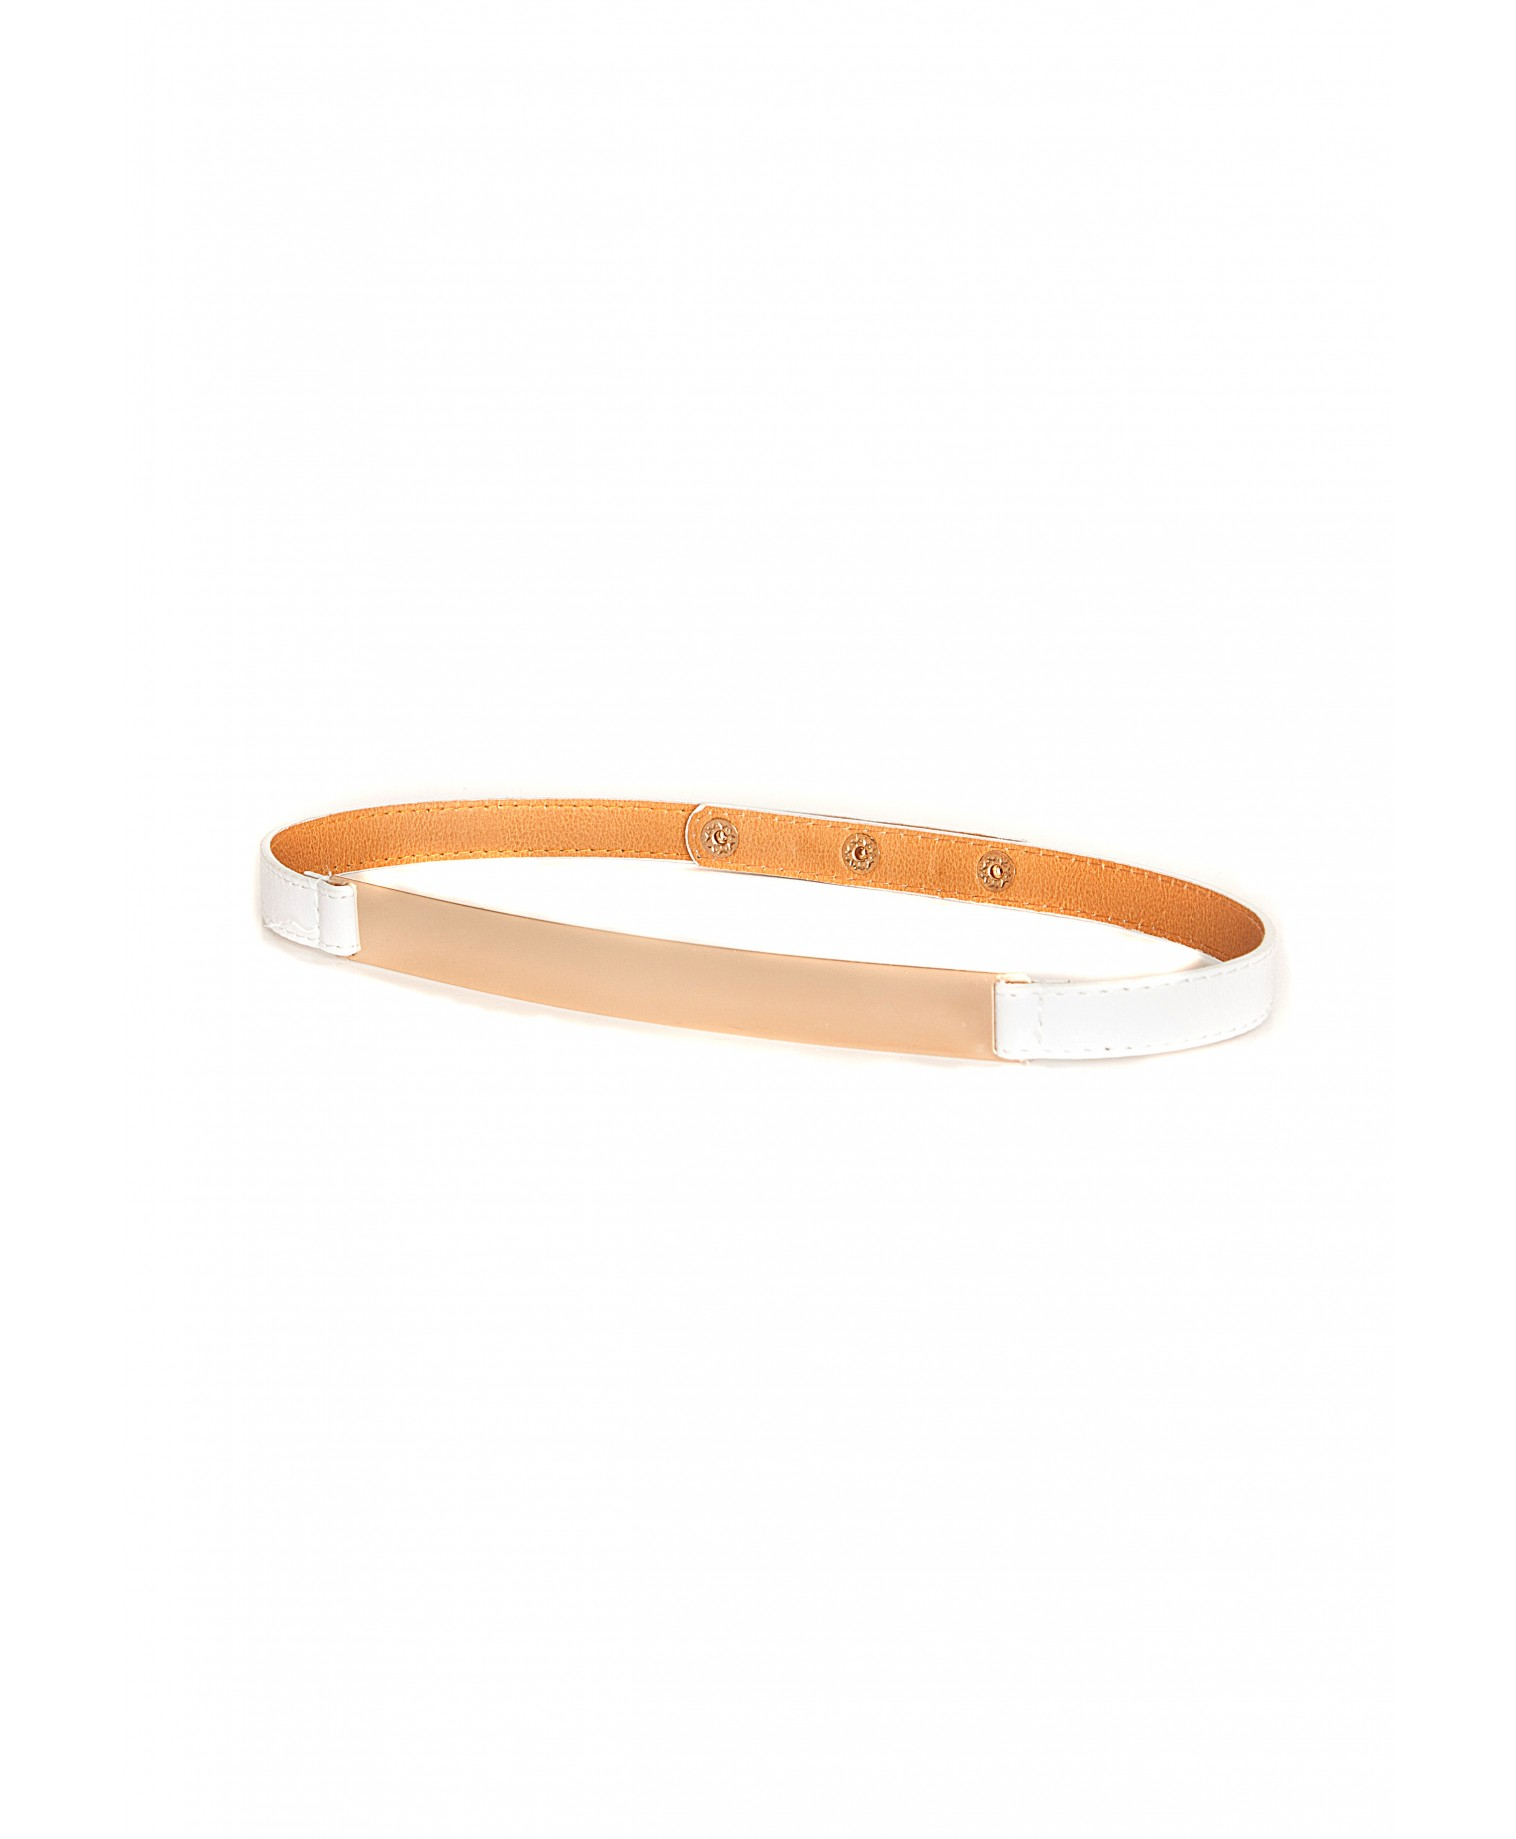 Missguided - Lidea Leather Thin Belt In White - Campaign